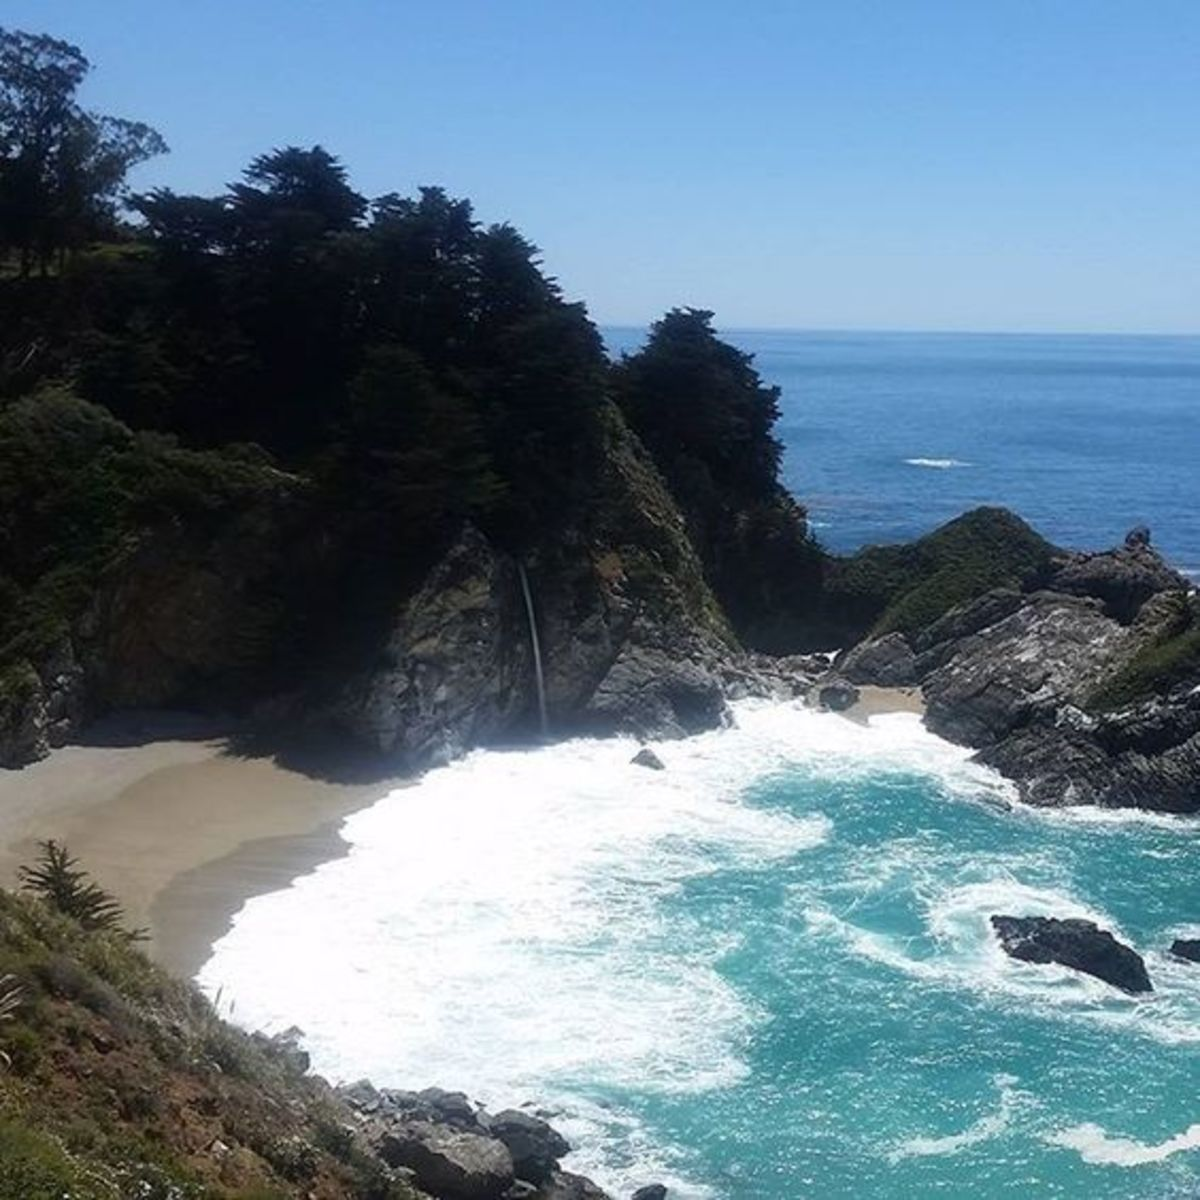 Pfeiffer Big Sur State Park is a huge preserve with more than 1,000 acres of coastal wilderness.